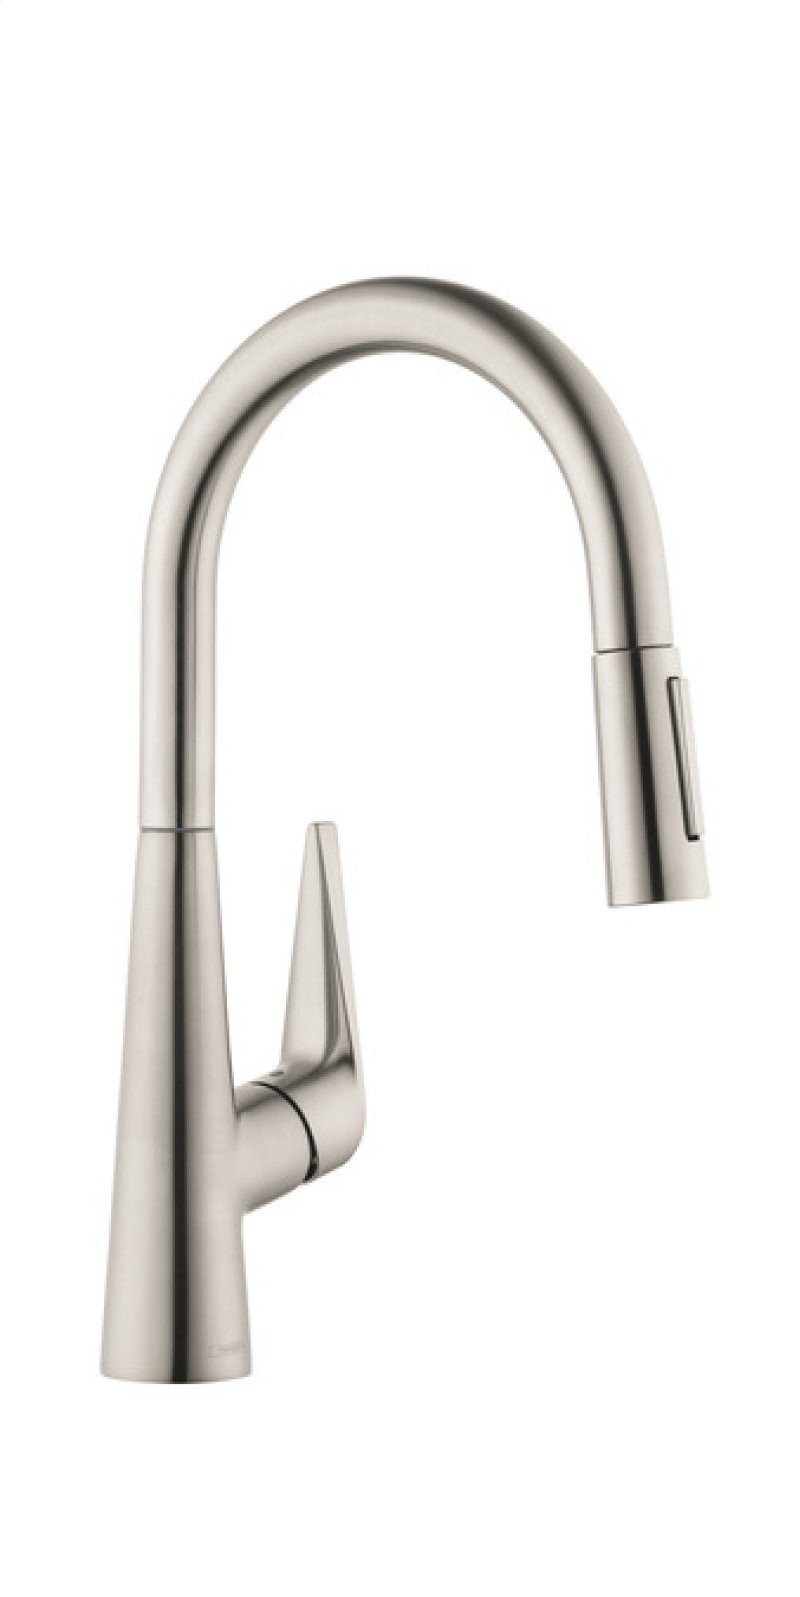 72813801 in Steel Optic by Hansgrohe in Atlanta, GA - Steel Optic ...